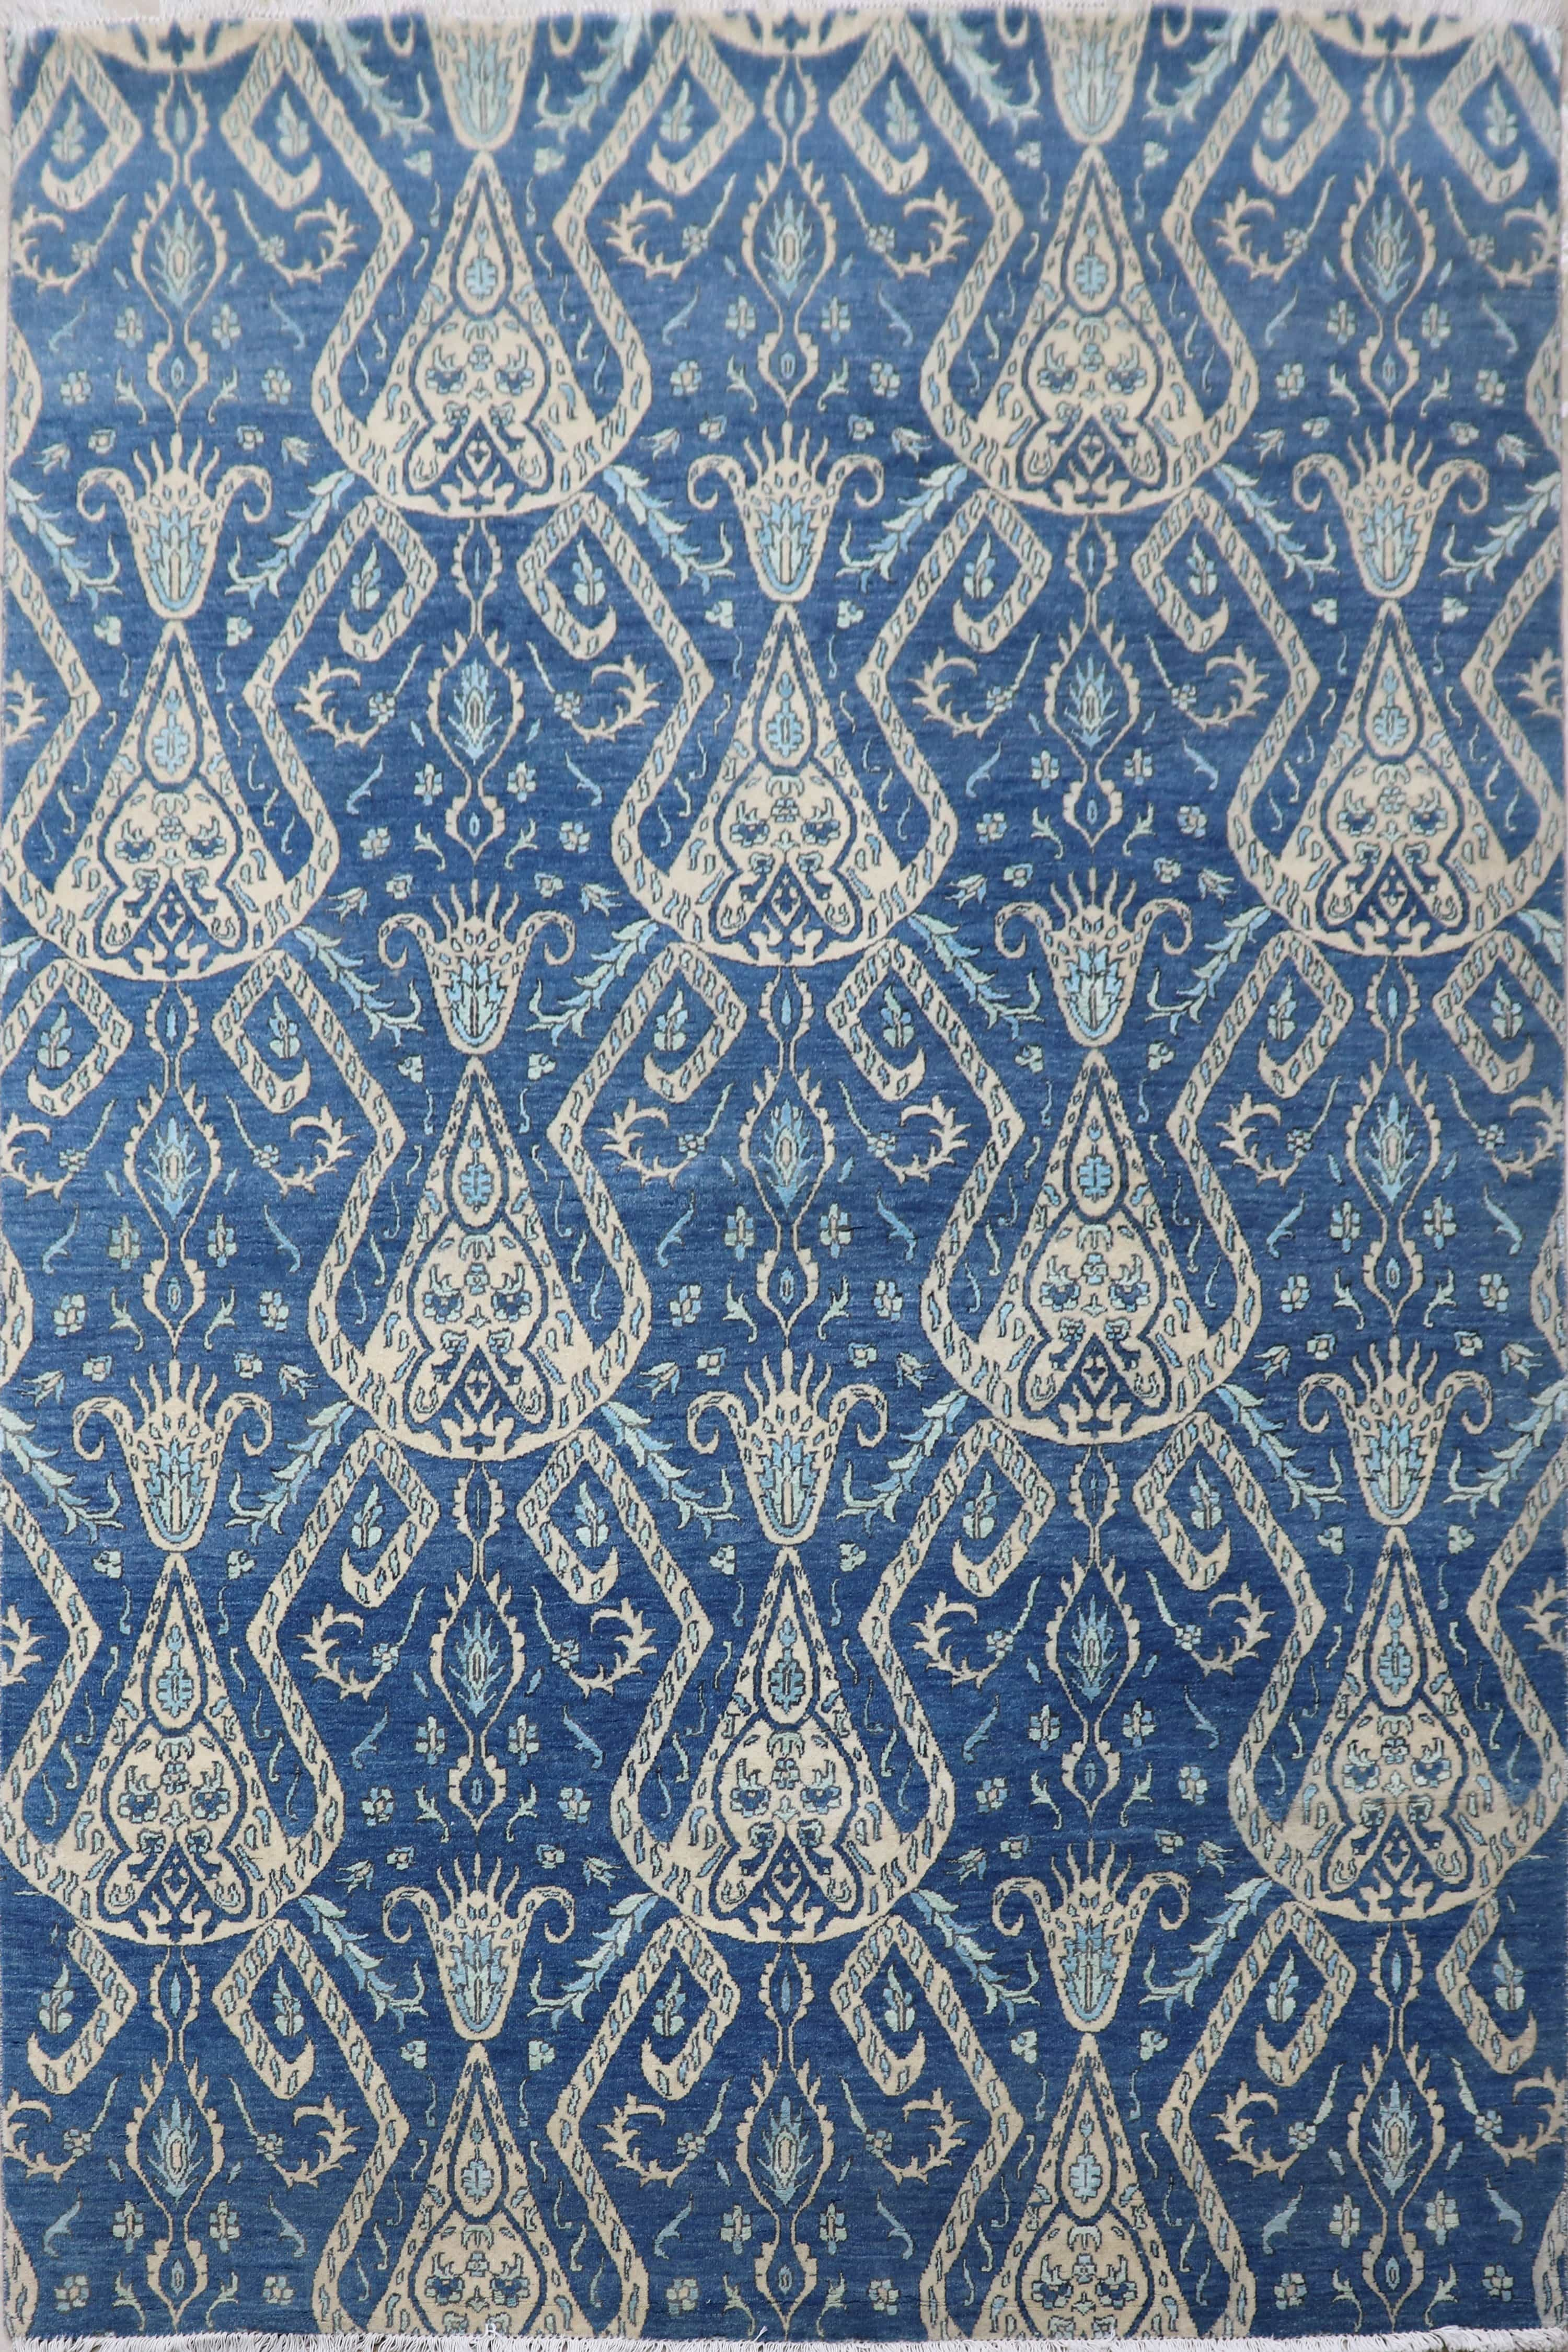 Tribe of Blues: Modern Rug for Living Room, Bedroom, Dining Room, and Office